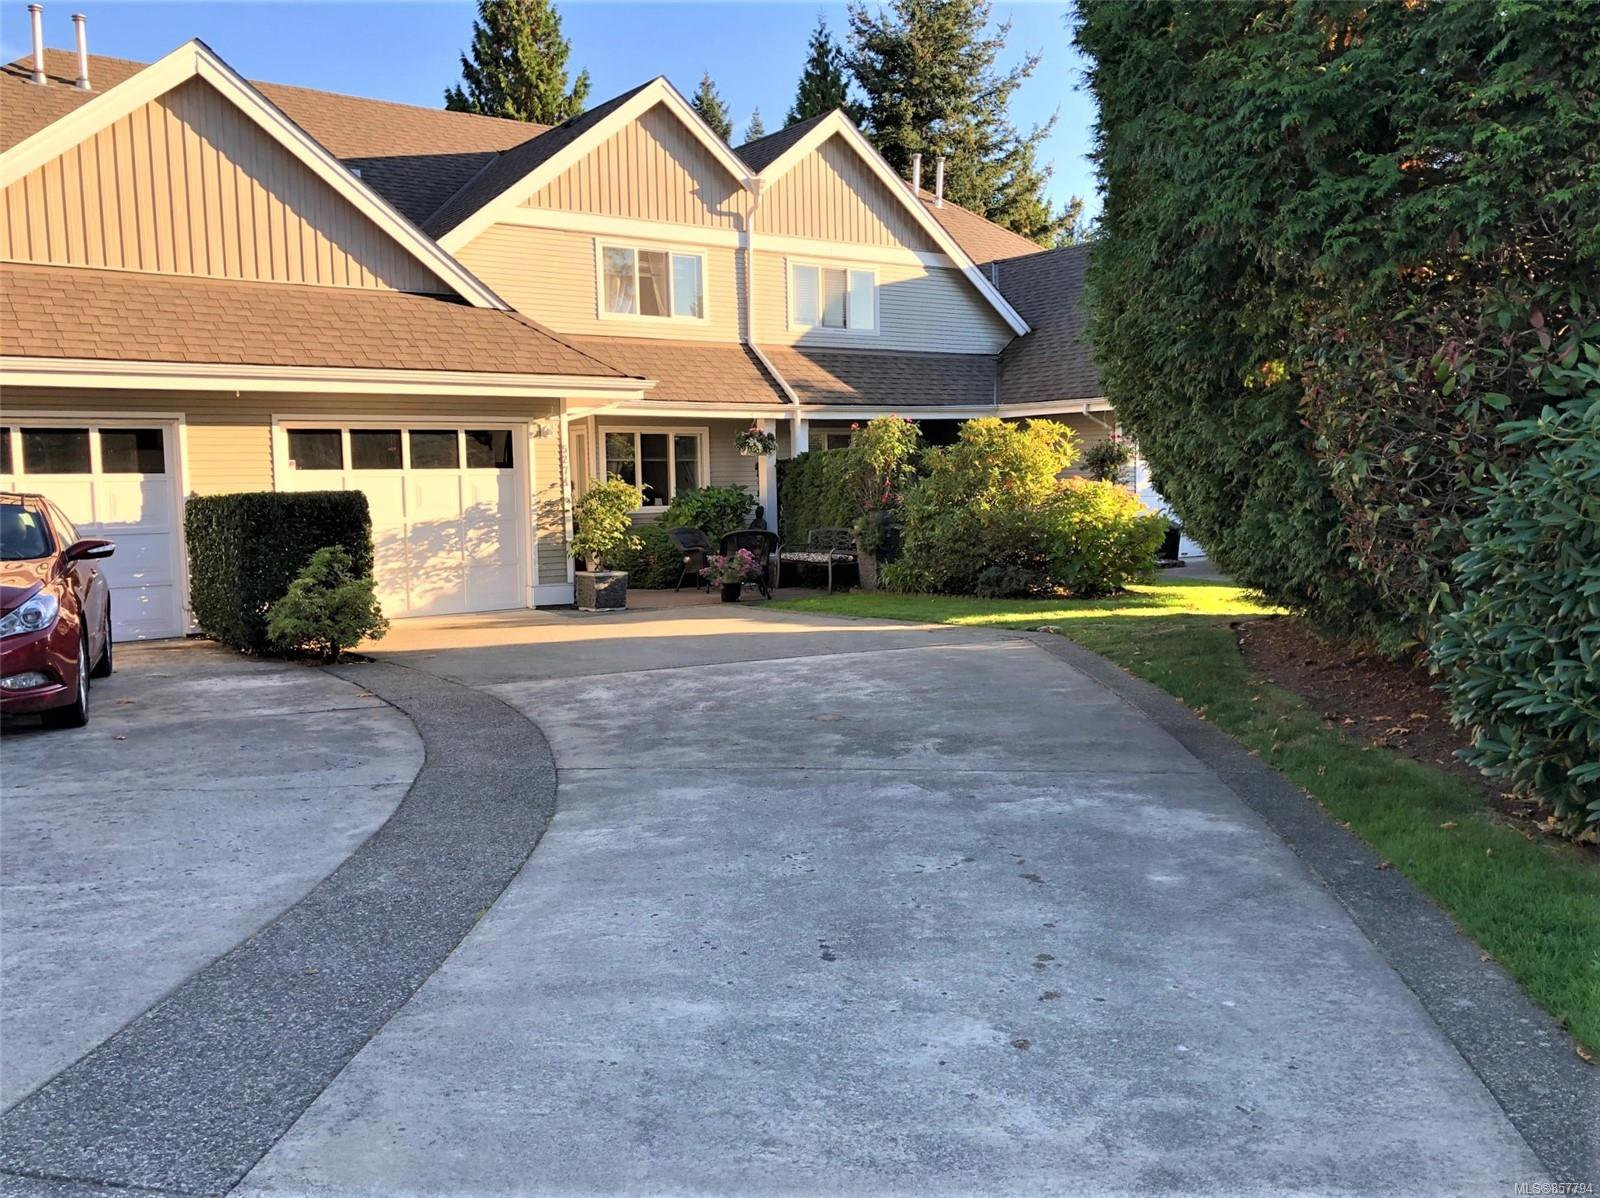 Main Photo: 5274 Arbour Cres in : Na North Nanaimo Row/Townhouse for sale (Nanaimo)  : MLS®# 857794